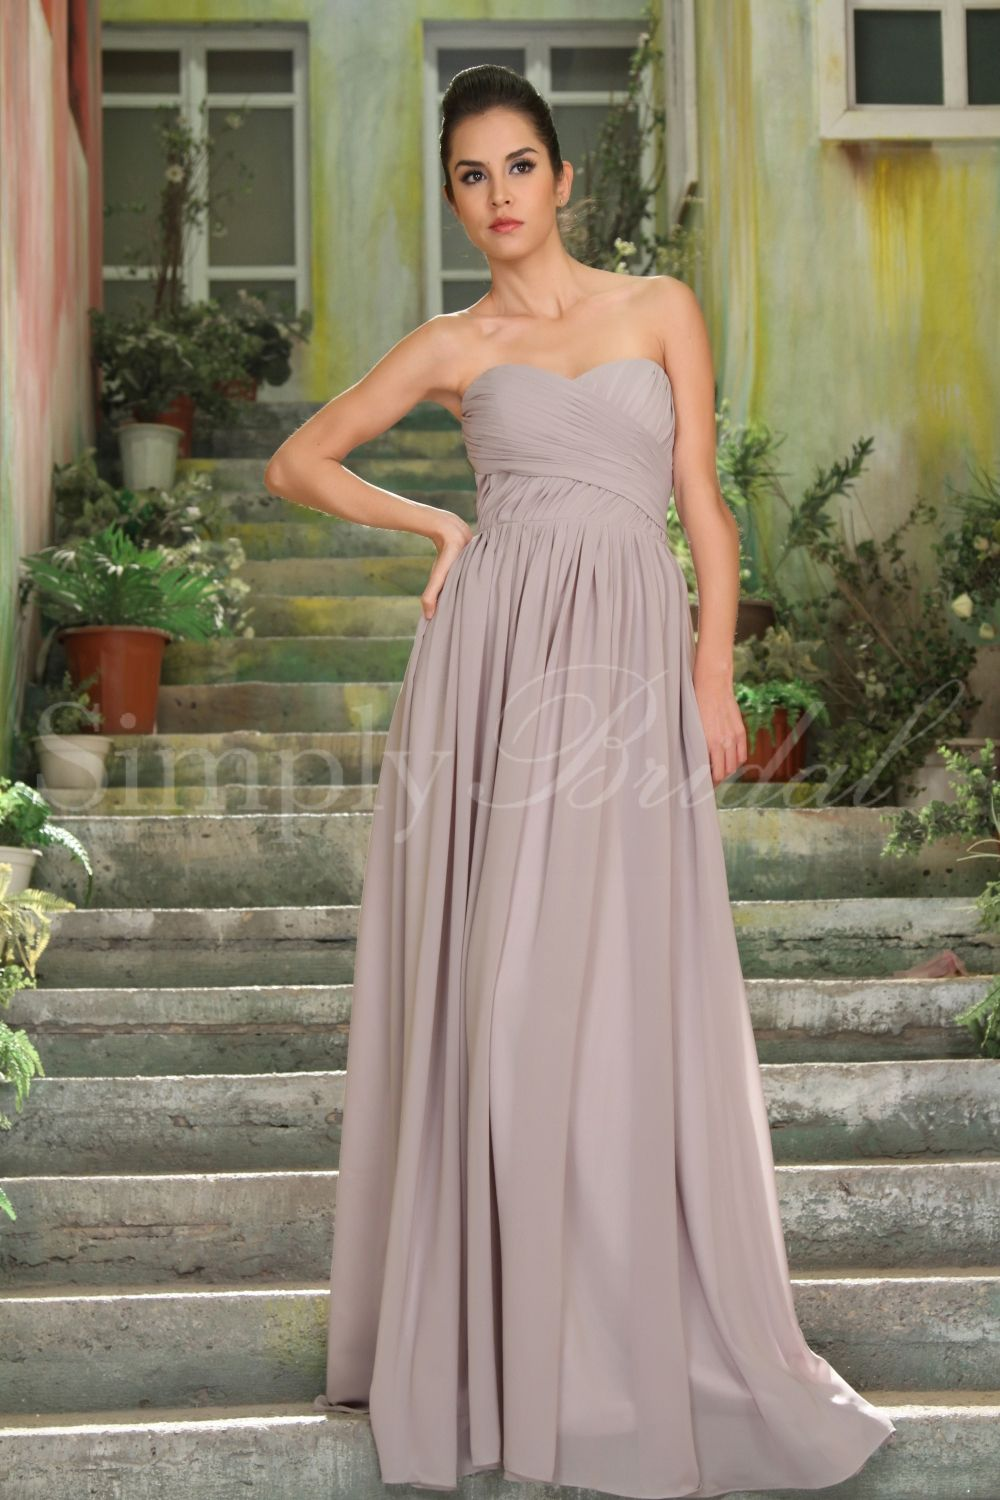 This dress is perfect for a lovely garden wedding it also has a